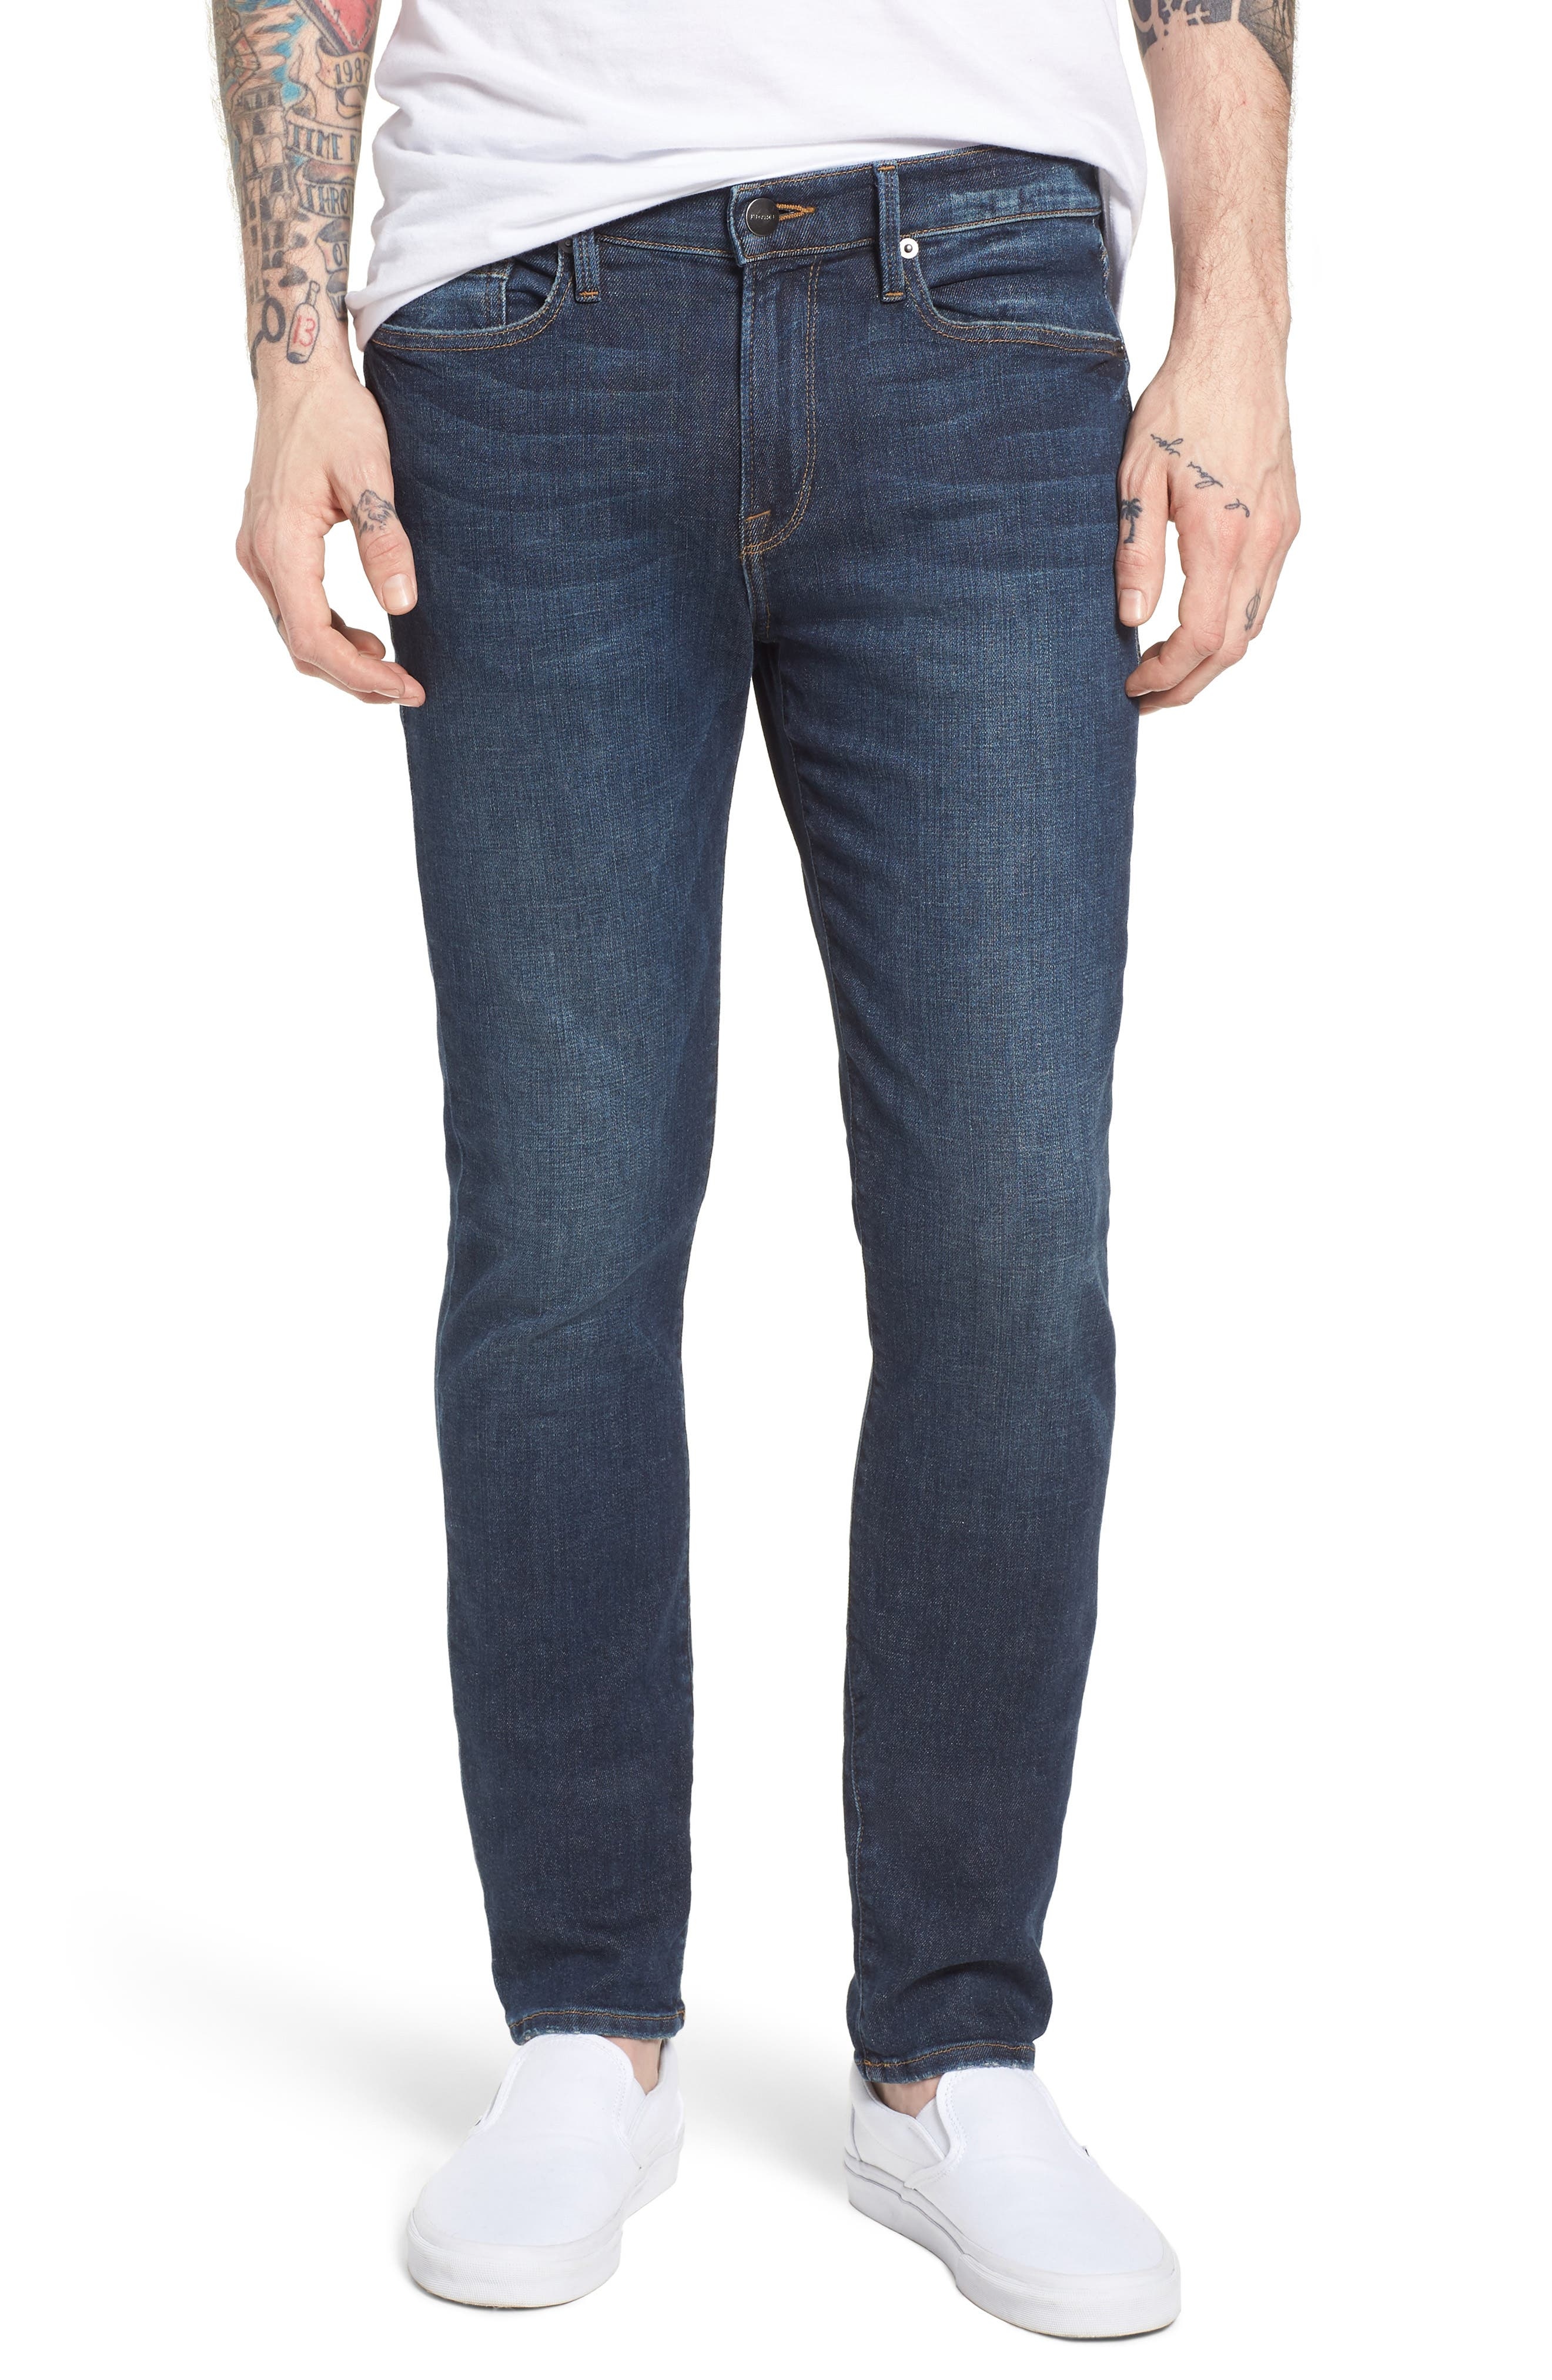 L'Homme Skinny Jeans,                             Main thumbnail 1, color,                             421